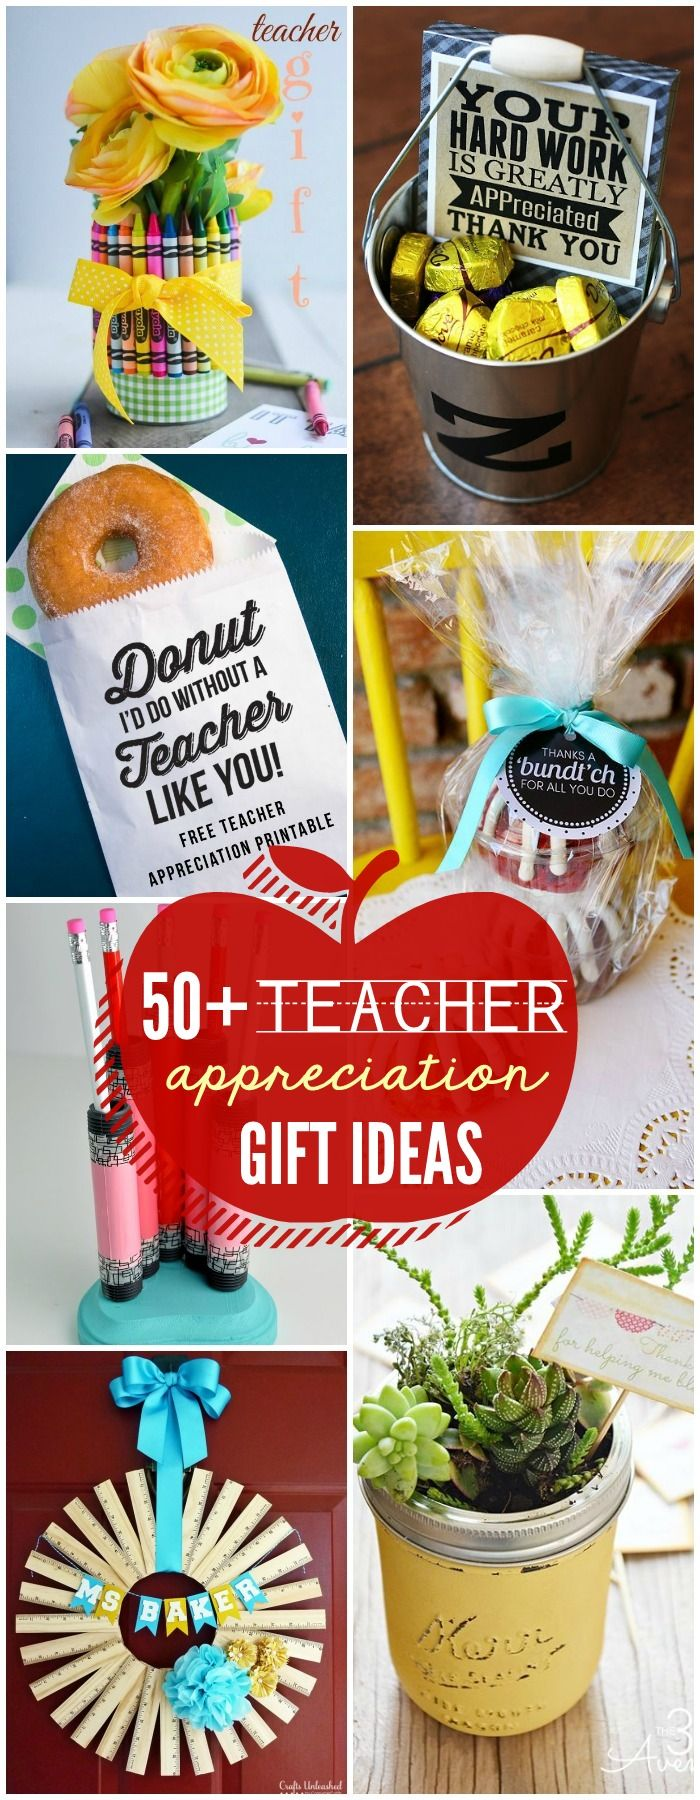 50+ Must-See Teacher Appreciate Gift Ideas